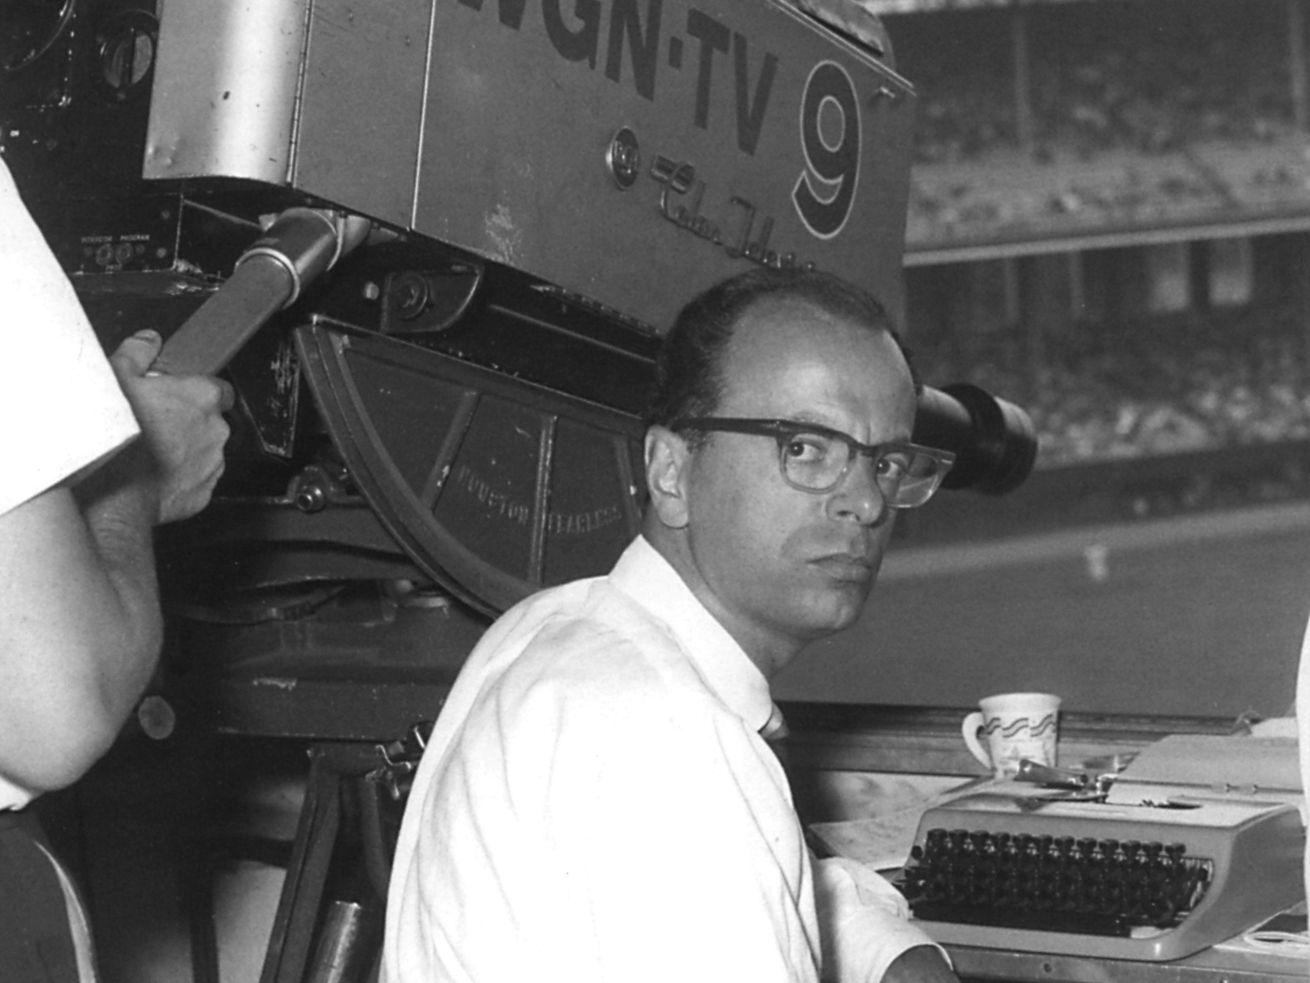 Former WGN sports editor Jack Rosenberg, shown in a 1958 photo at Comiskey Park, has died at age 94.